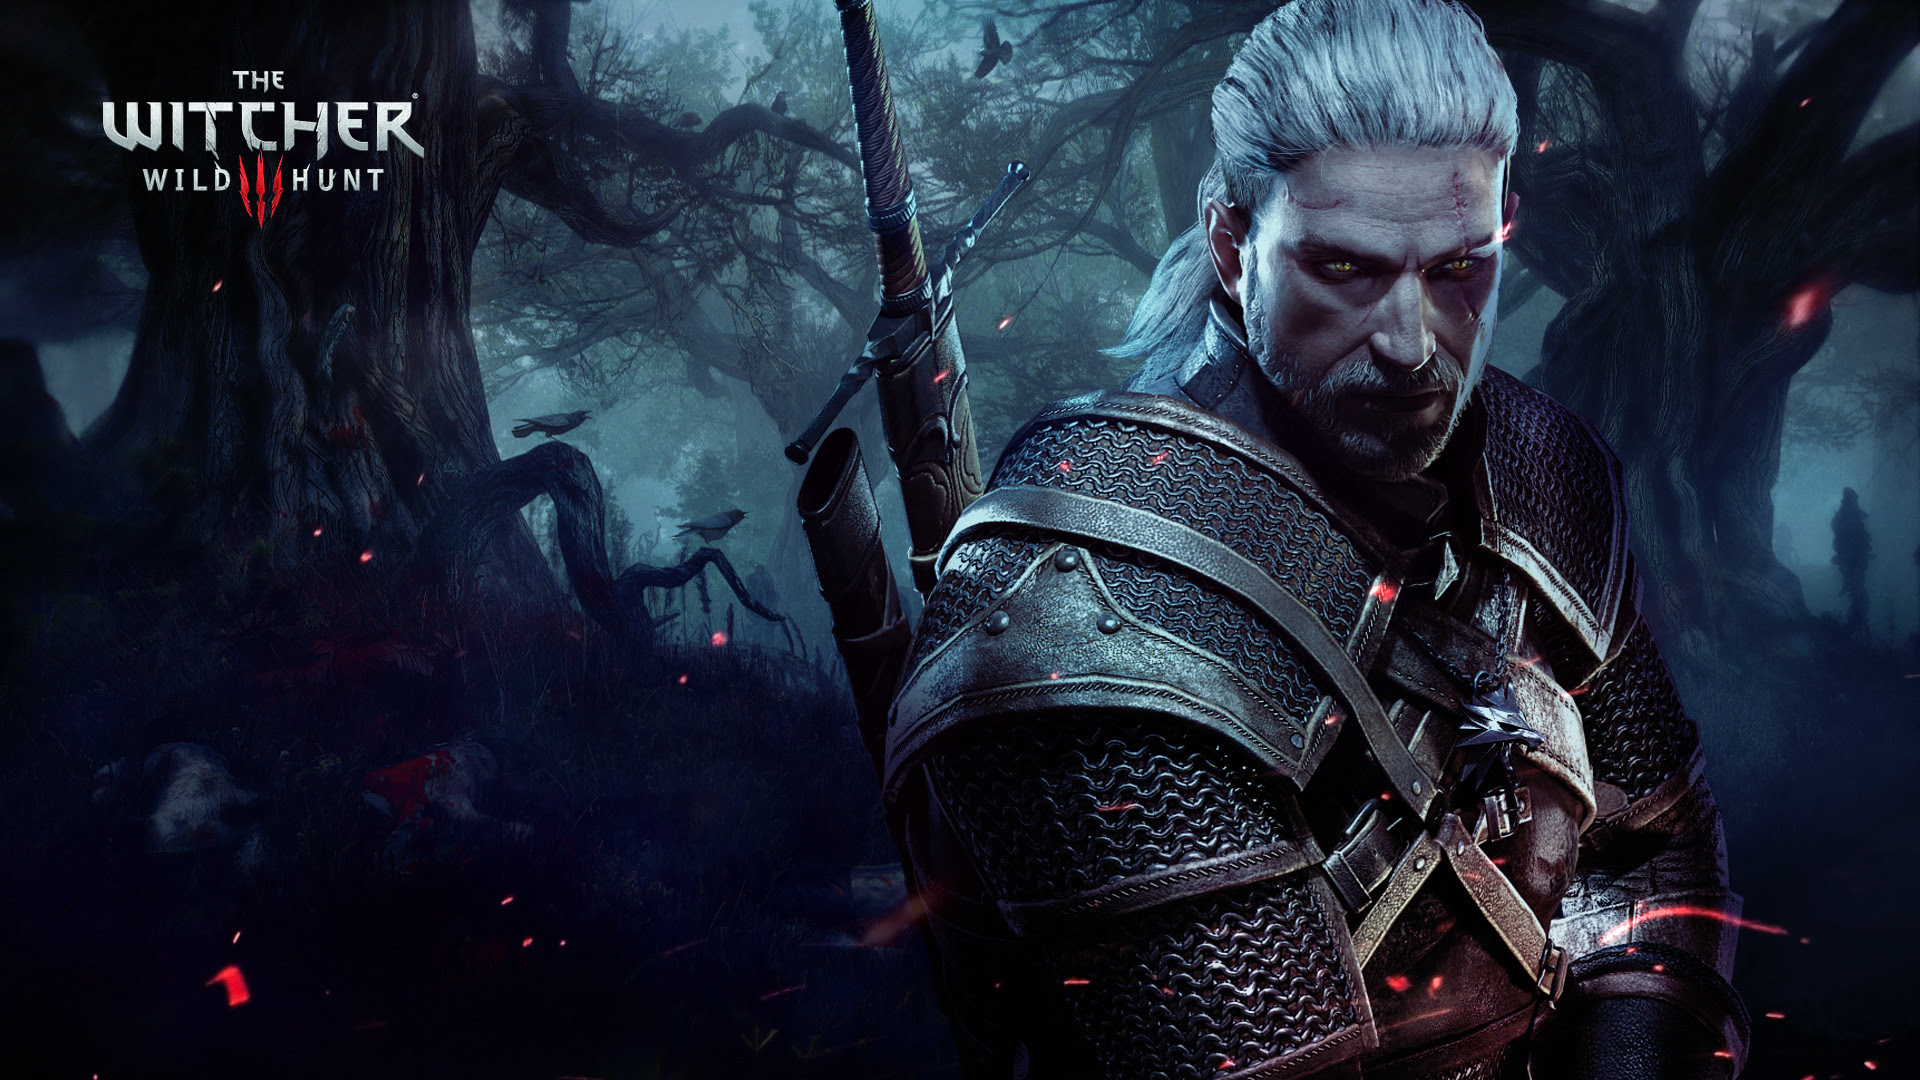 Witcher 3 Wallpaper 1920x1080 81 Images